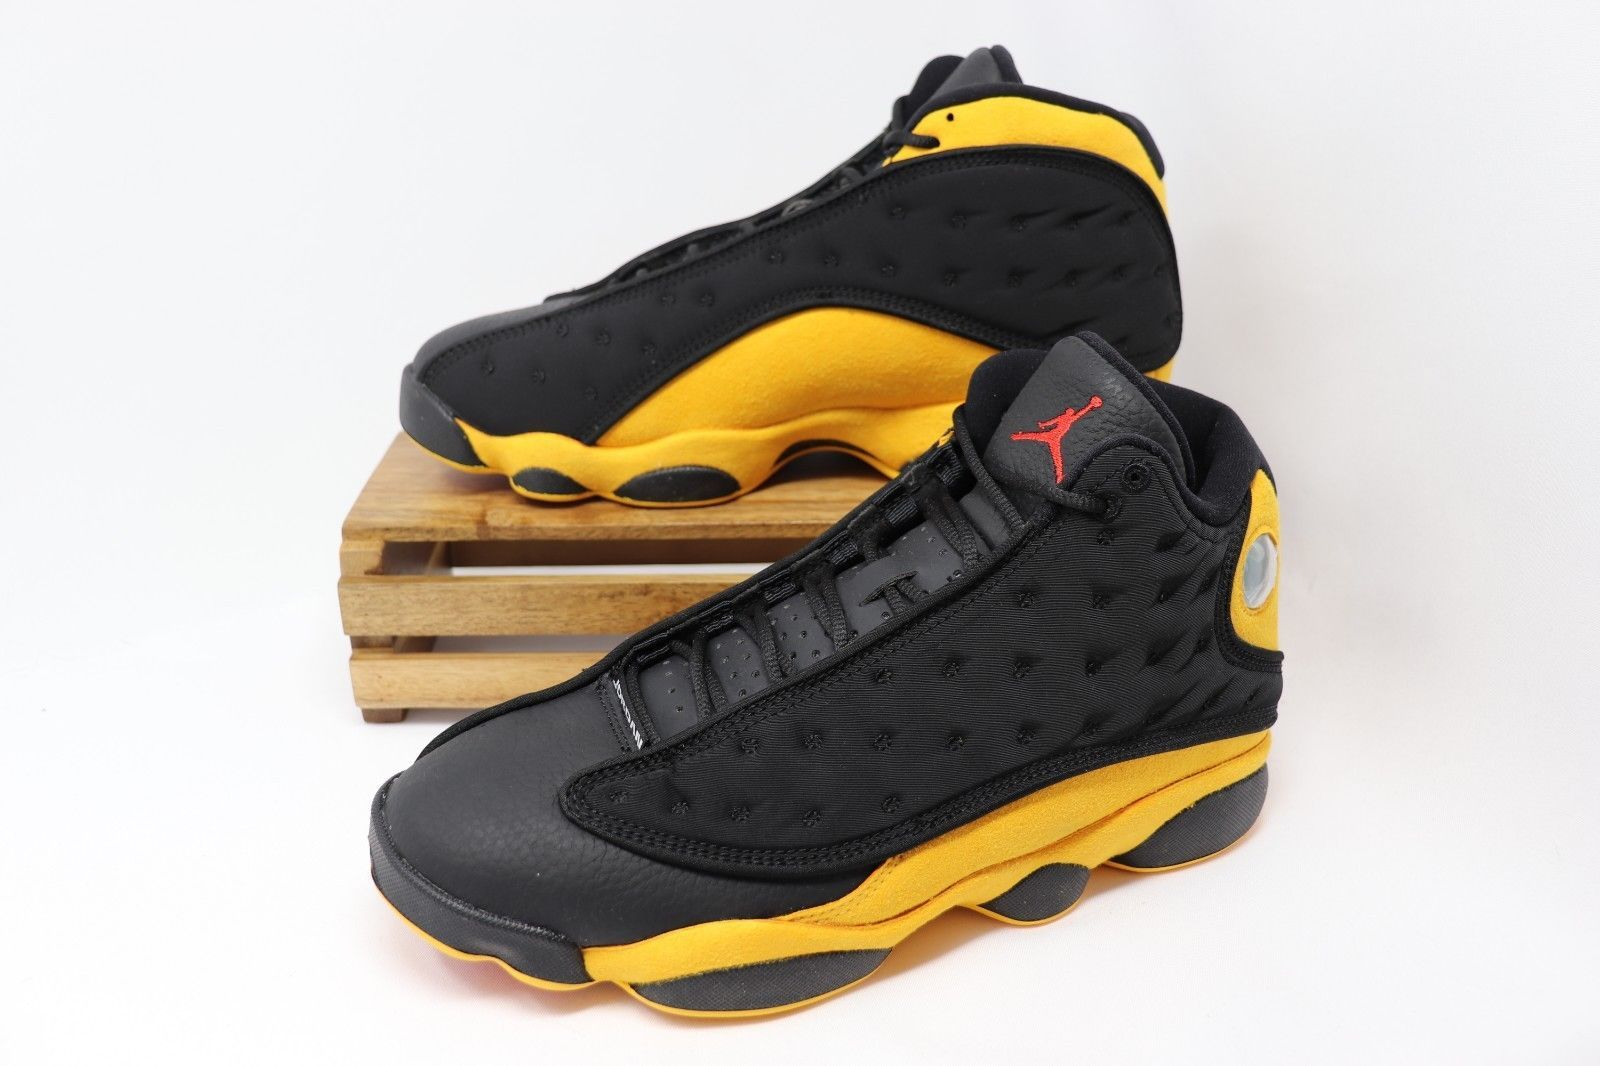 release date 368e8 71807 Nike Air Jordan 13 XIII Retro Melo Black Yellow Red Class of 2002 414571-035  NEW